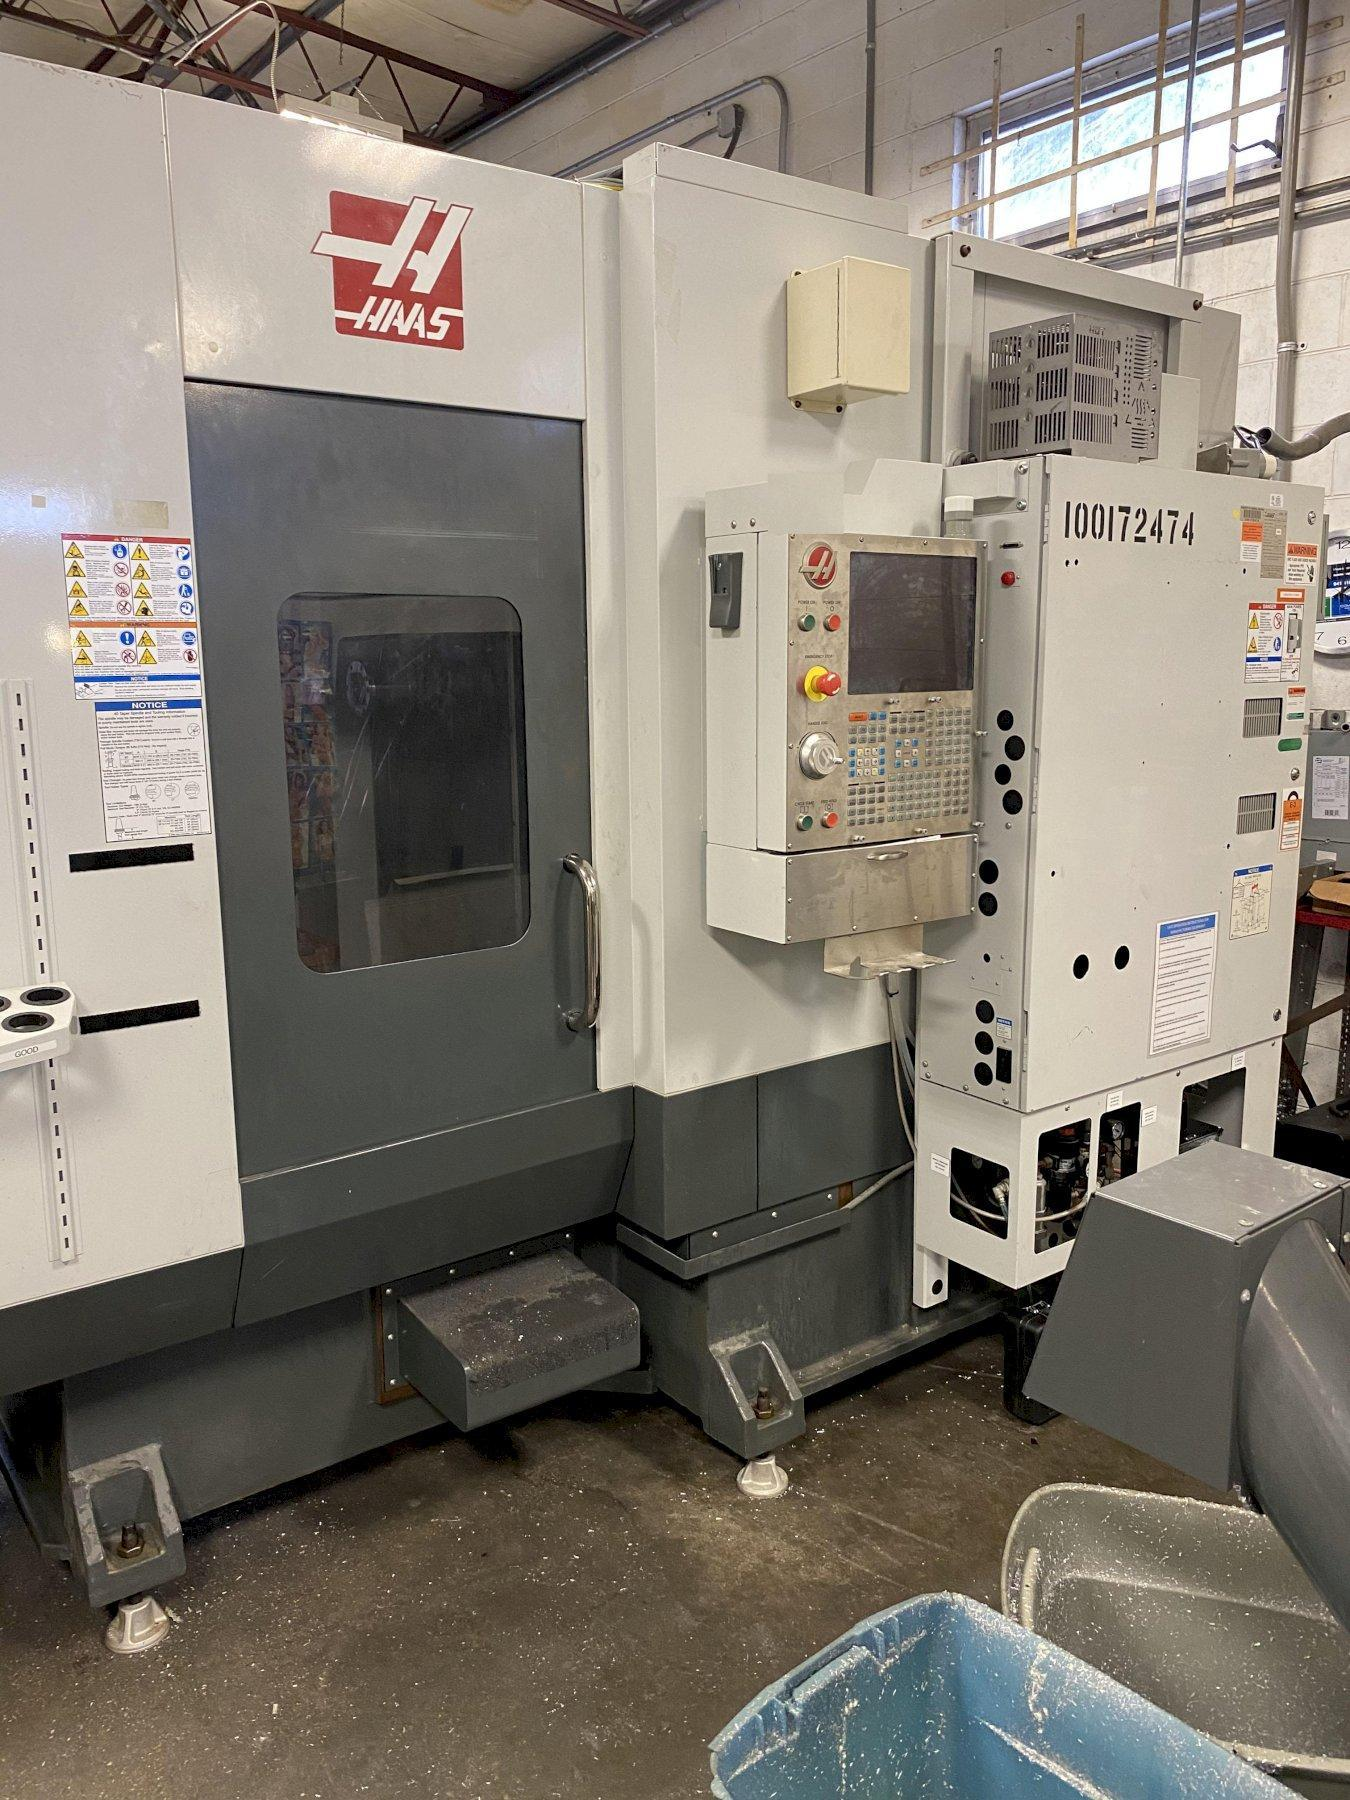 Haas EC300 CNC Horizontal Machining Center (2012)